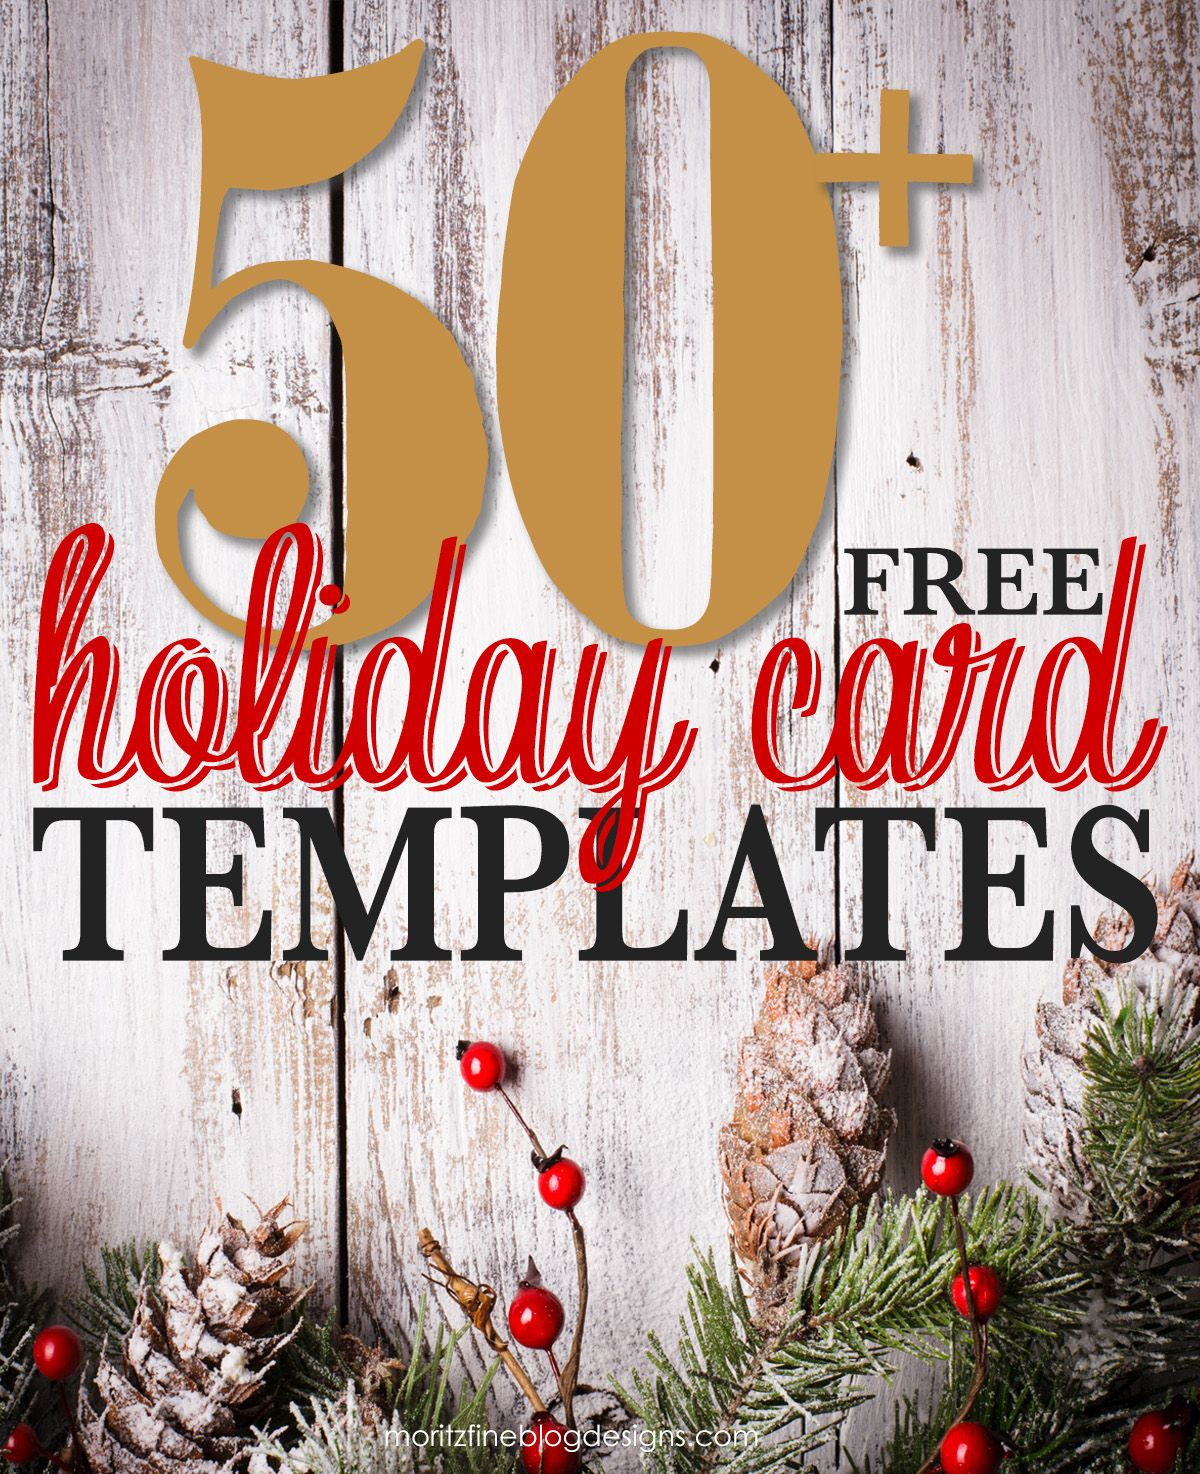 free holiday cards templates free holiday cards